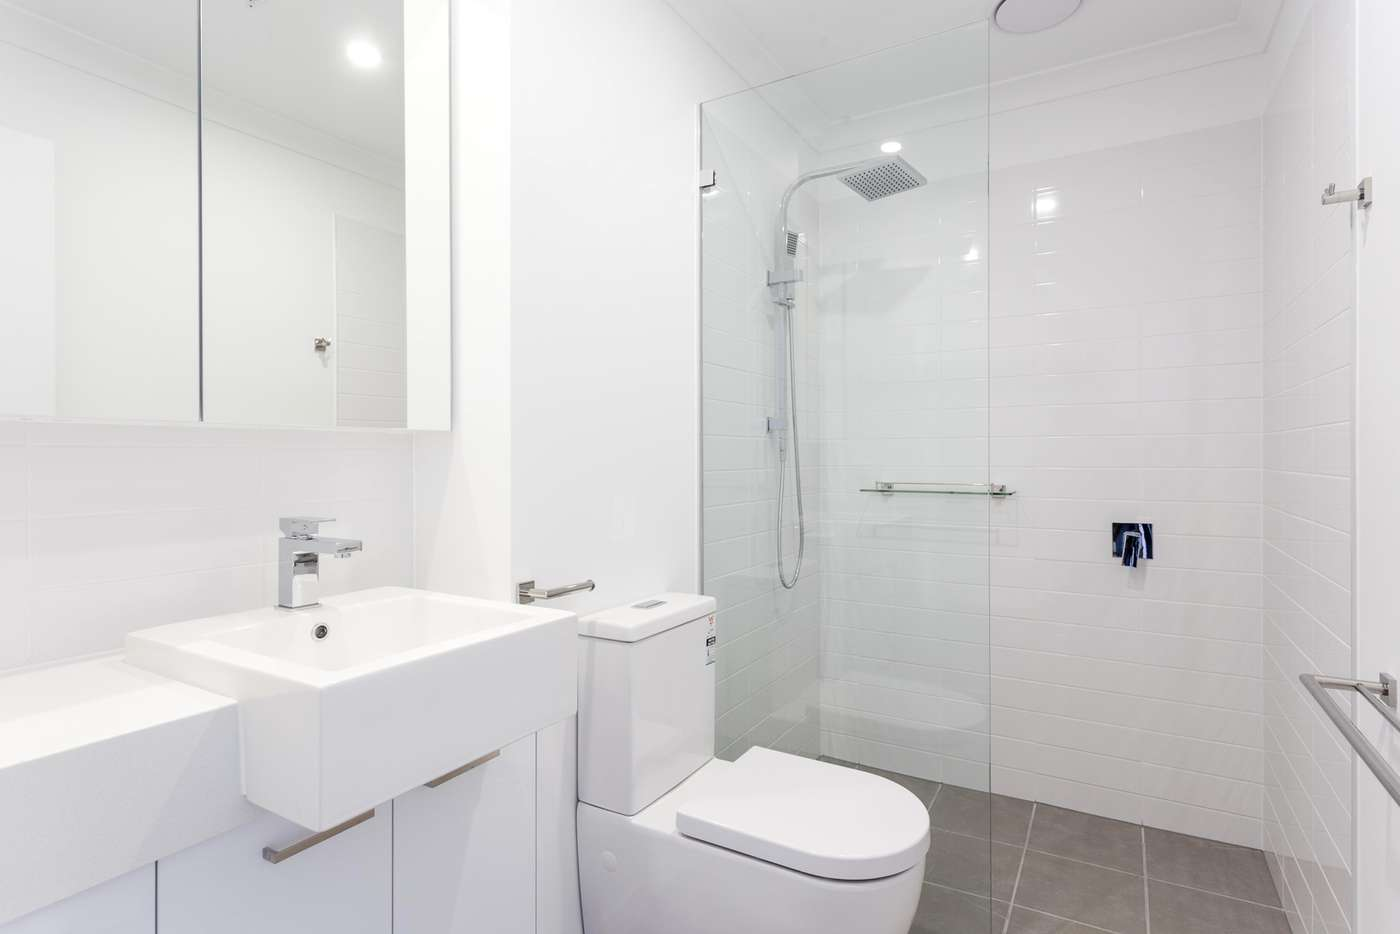 Sixth view of Homely apartment listing, 205/12 Olive York Way, Brunswick West VIC 3055